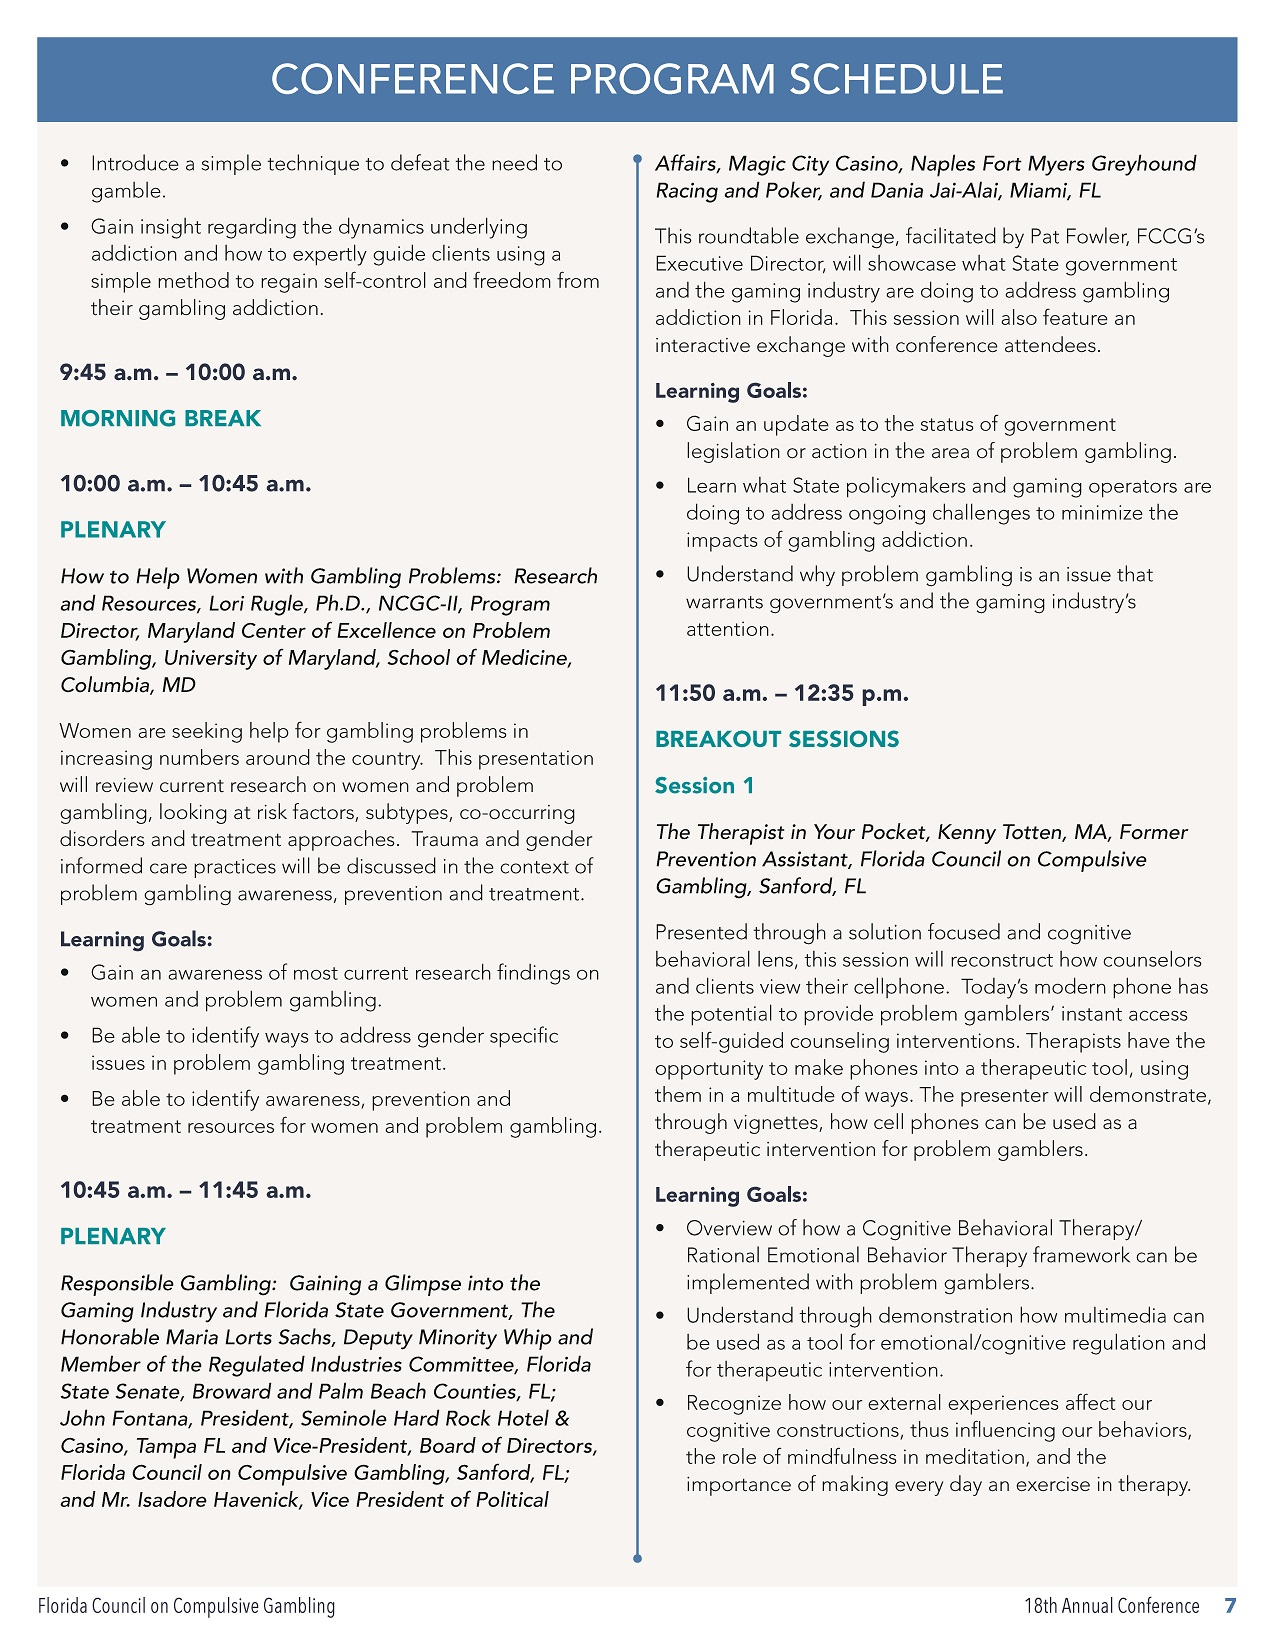 18th Annual Conference Program Schedule_Page_5